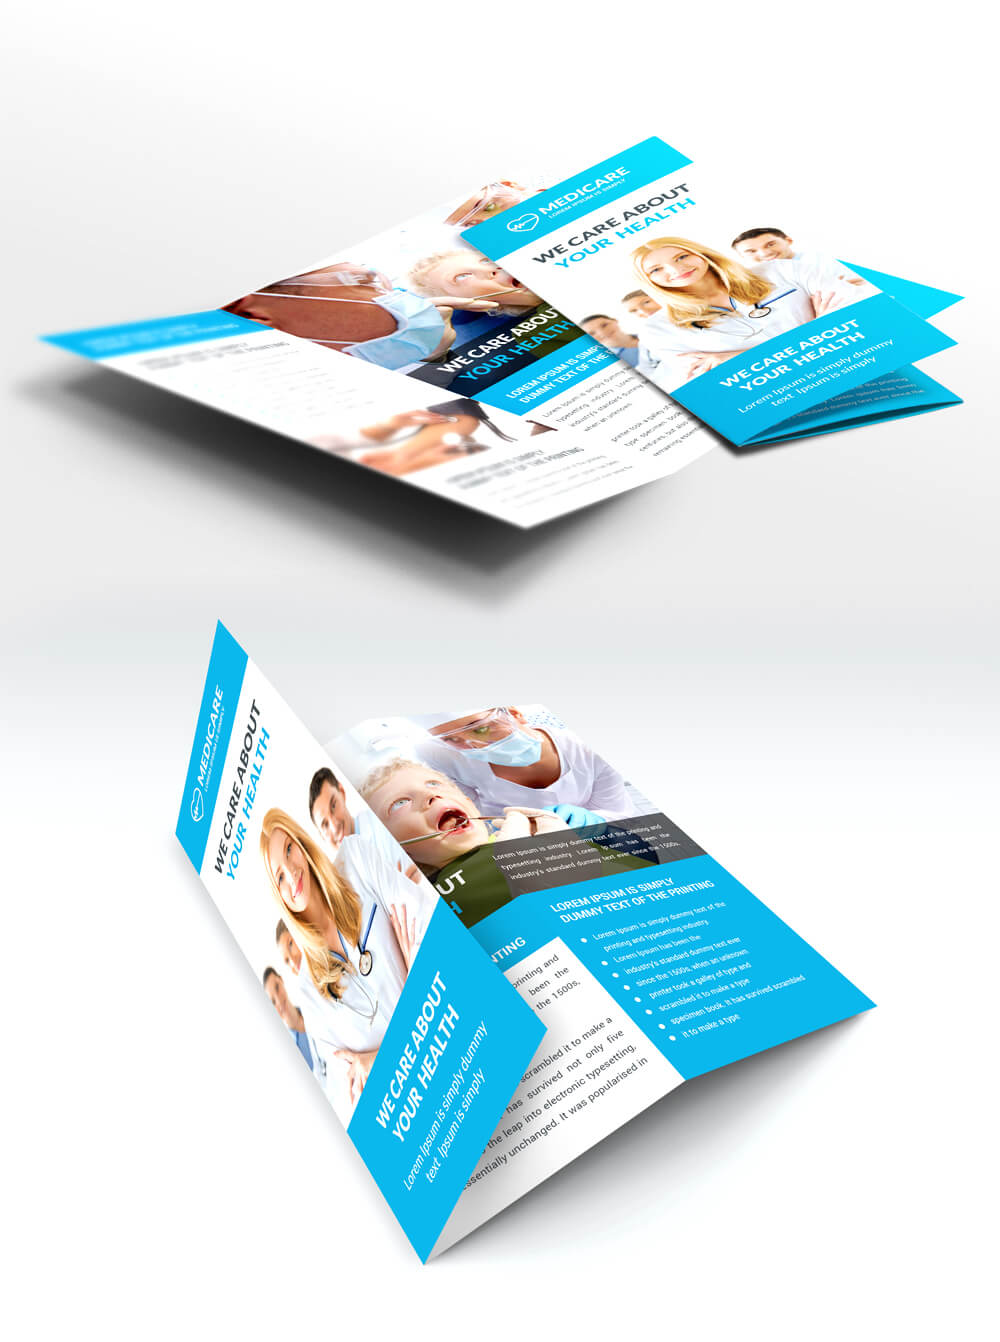 Medical Care And Hospital Trifold Brochure Template Free Psd intended for Pharmacy Brochure Template Free